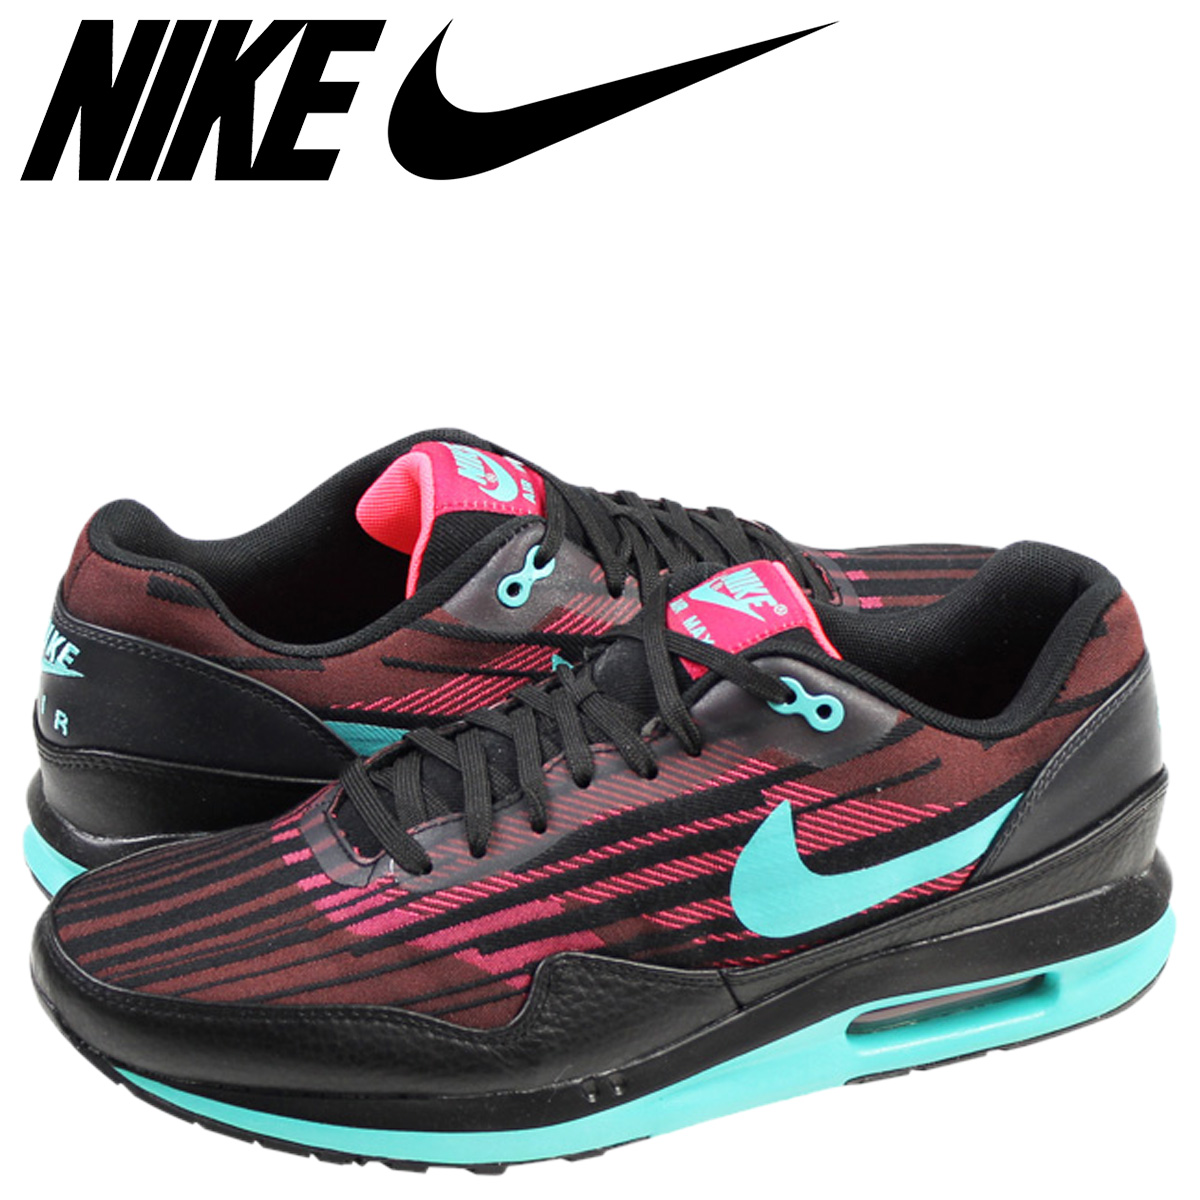 hot sales sale uk new lower prices NIKE Kie Ney AMAX sneakers AIR MAX LUNAR 1 JCRD Air Max luna 1 jacquard  654,467-600 men's shoes black black red